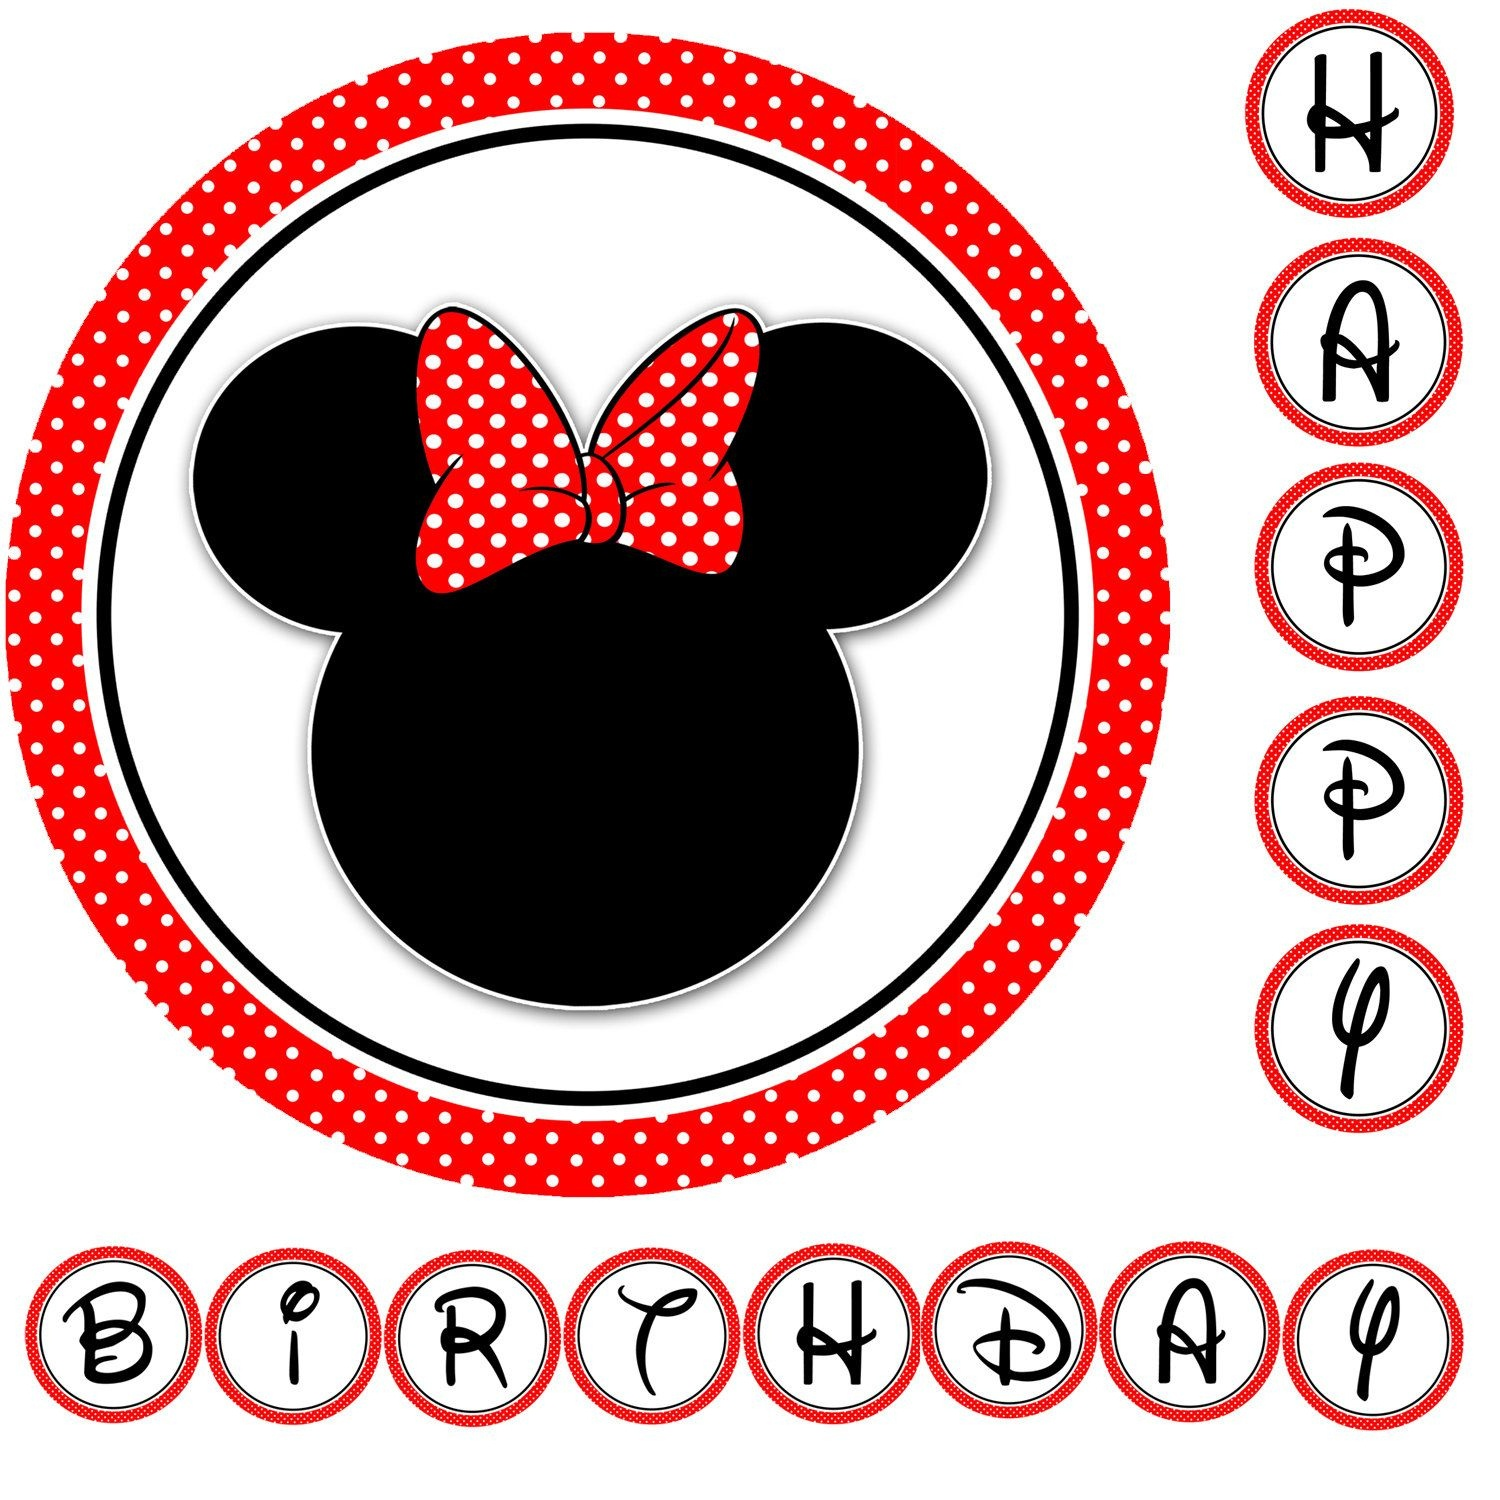 Free Minnie Mouse Birthday Printables    Mouse Sunkissedamy - Free Minnie Mouse Printables